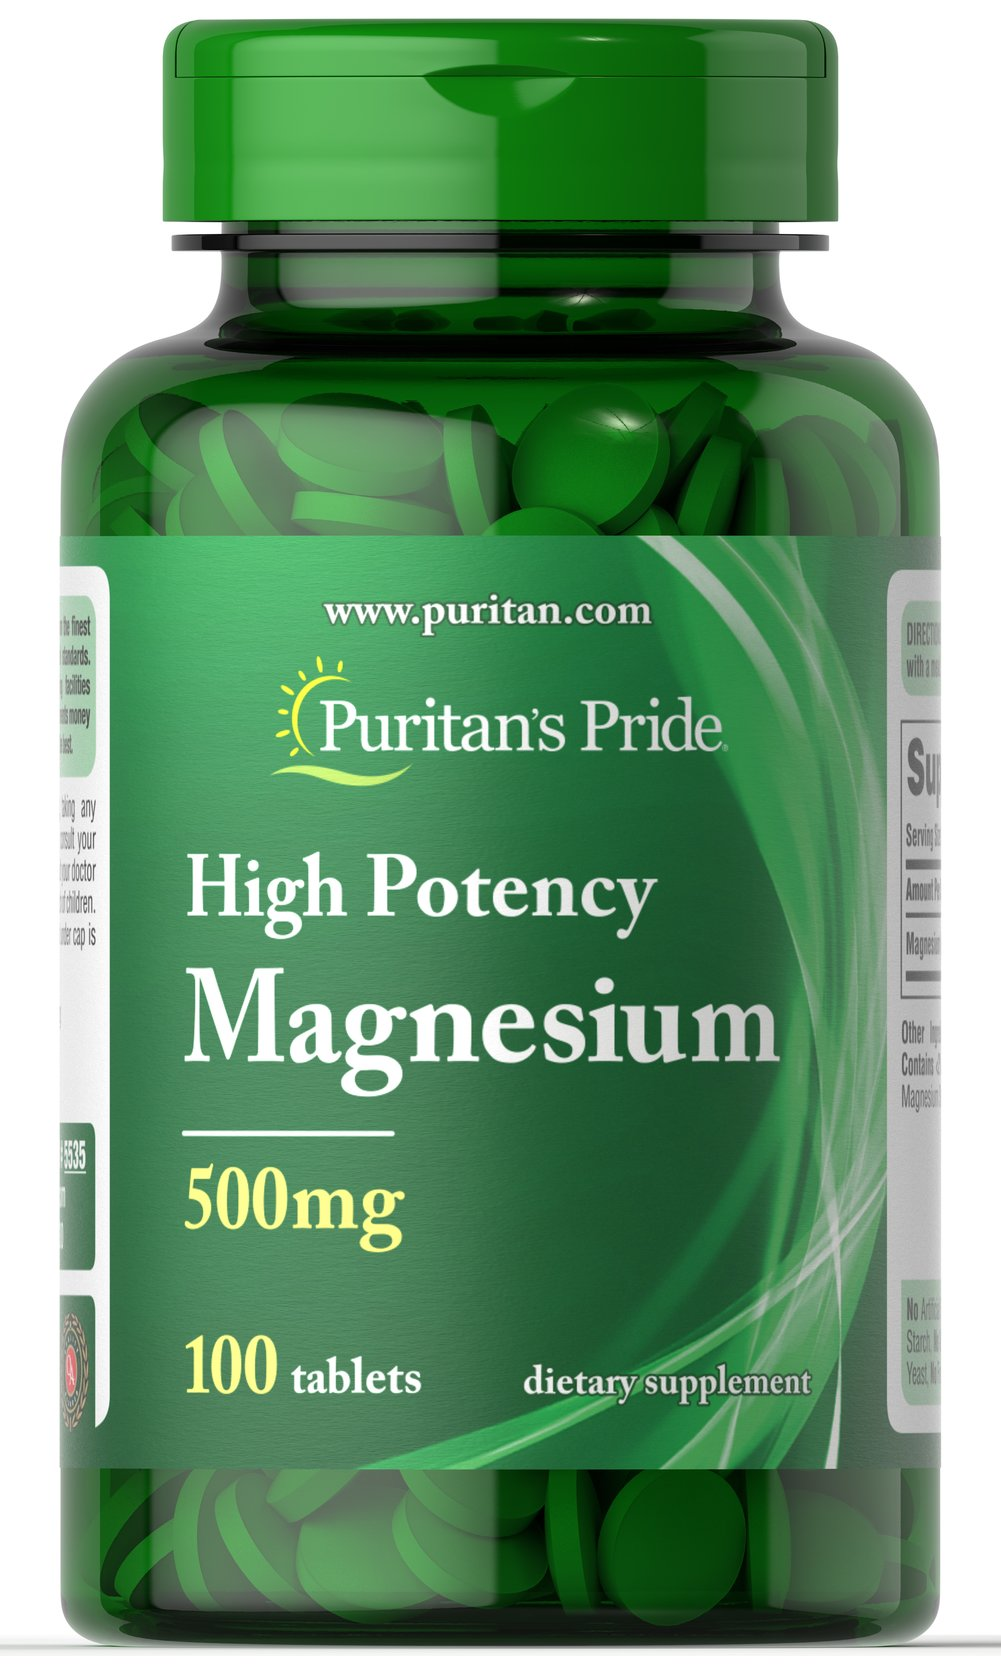 Magnesium 500 mg <p>Magnesium offers another option, besides Calcium, for supporting bone health.** Magnesium plays an essential role in maintaining bone mineralization, and is also involved in muscle contractions and nerve impulses.** Adults can take one caplet daily with a meal.</p> 100 Tablets 500 mg $9.08